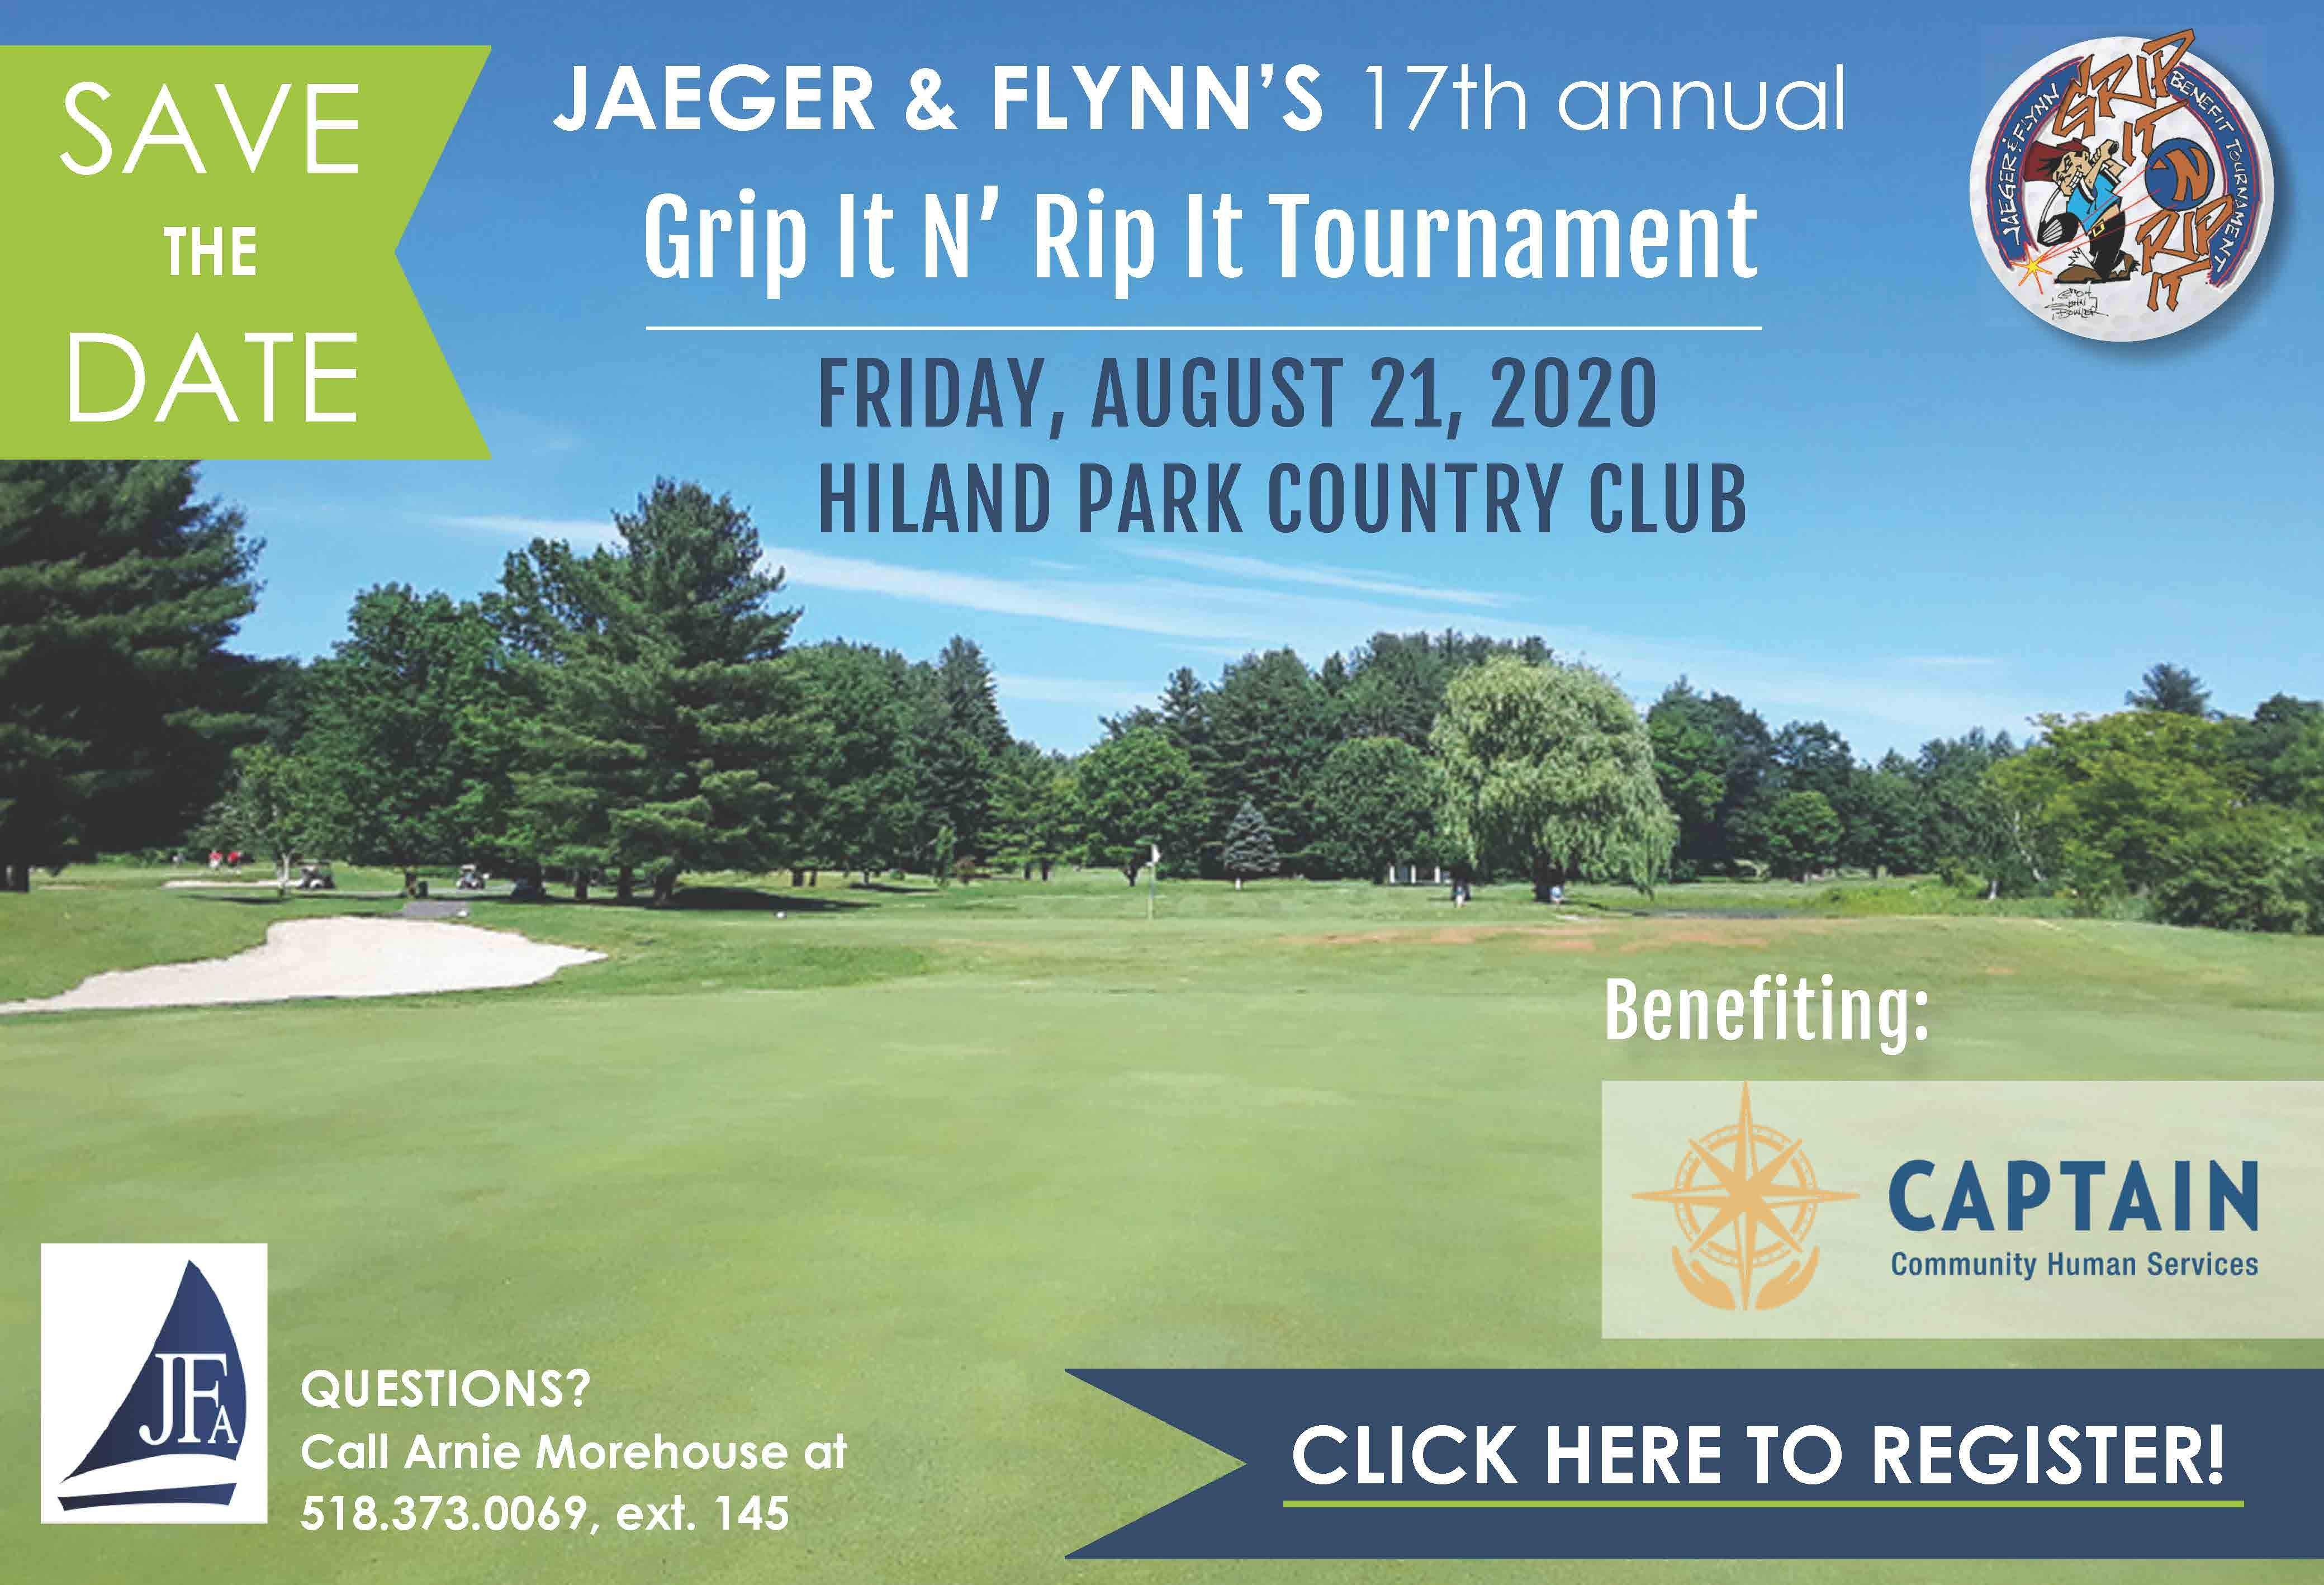 Jaeger & Flynn's Matching Gift Campaign